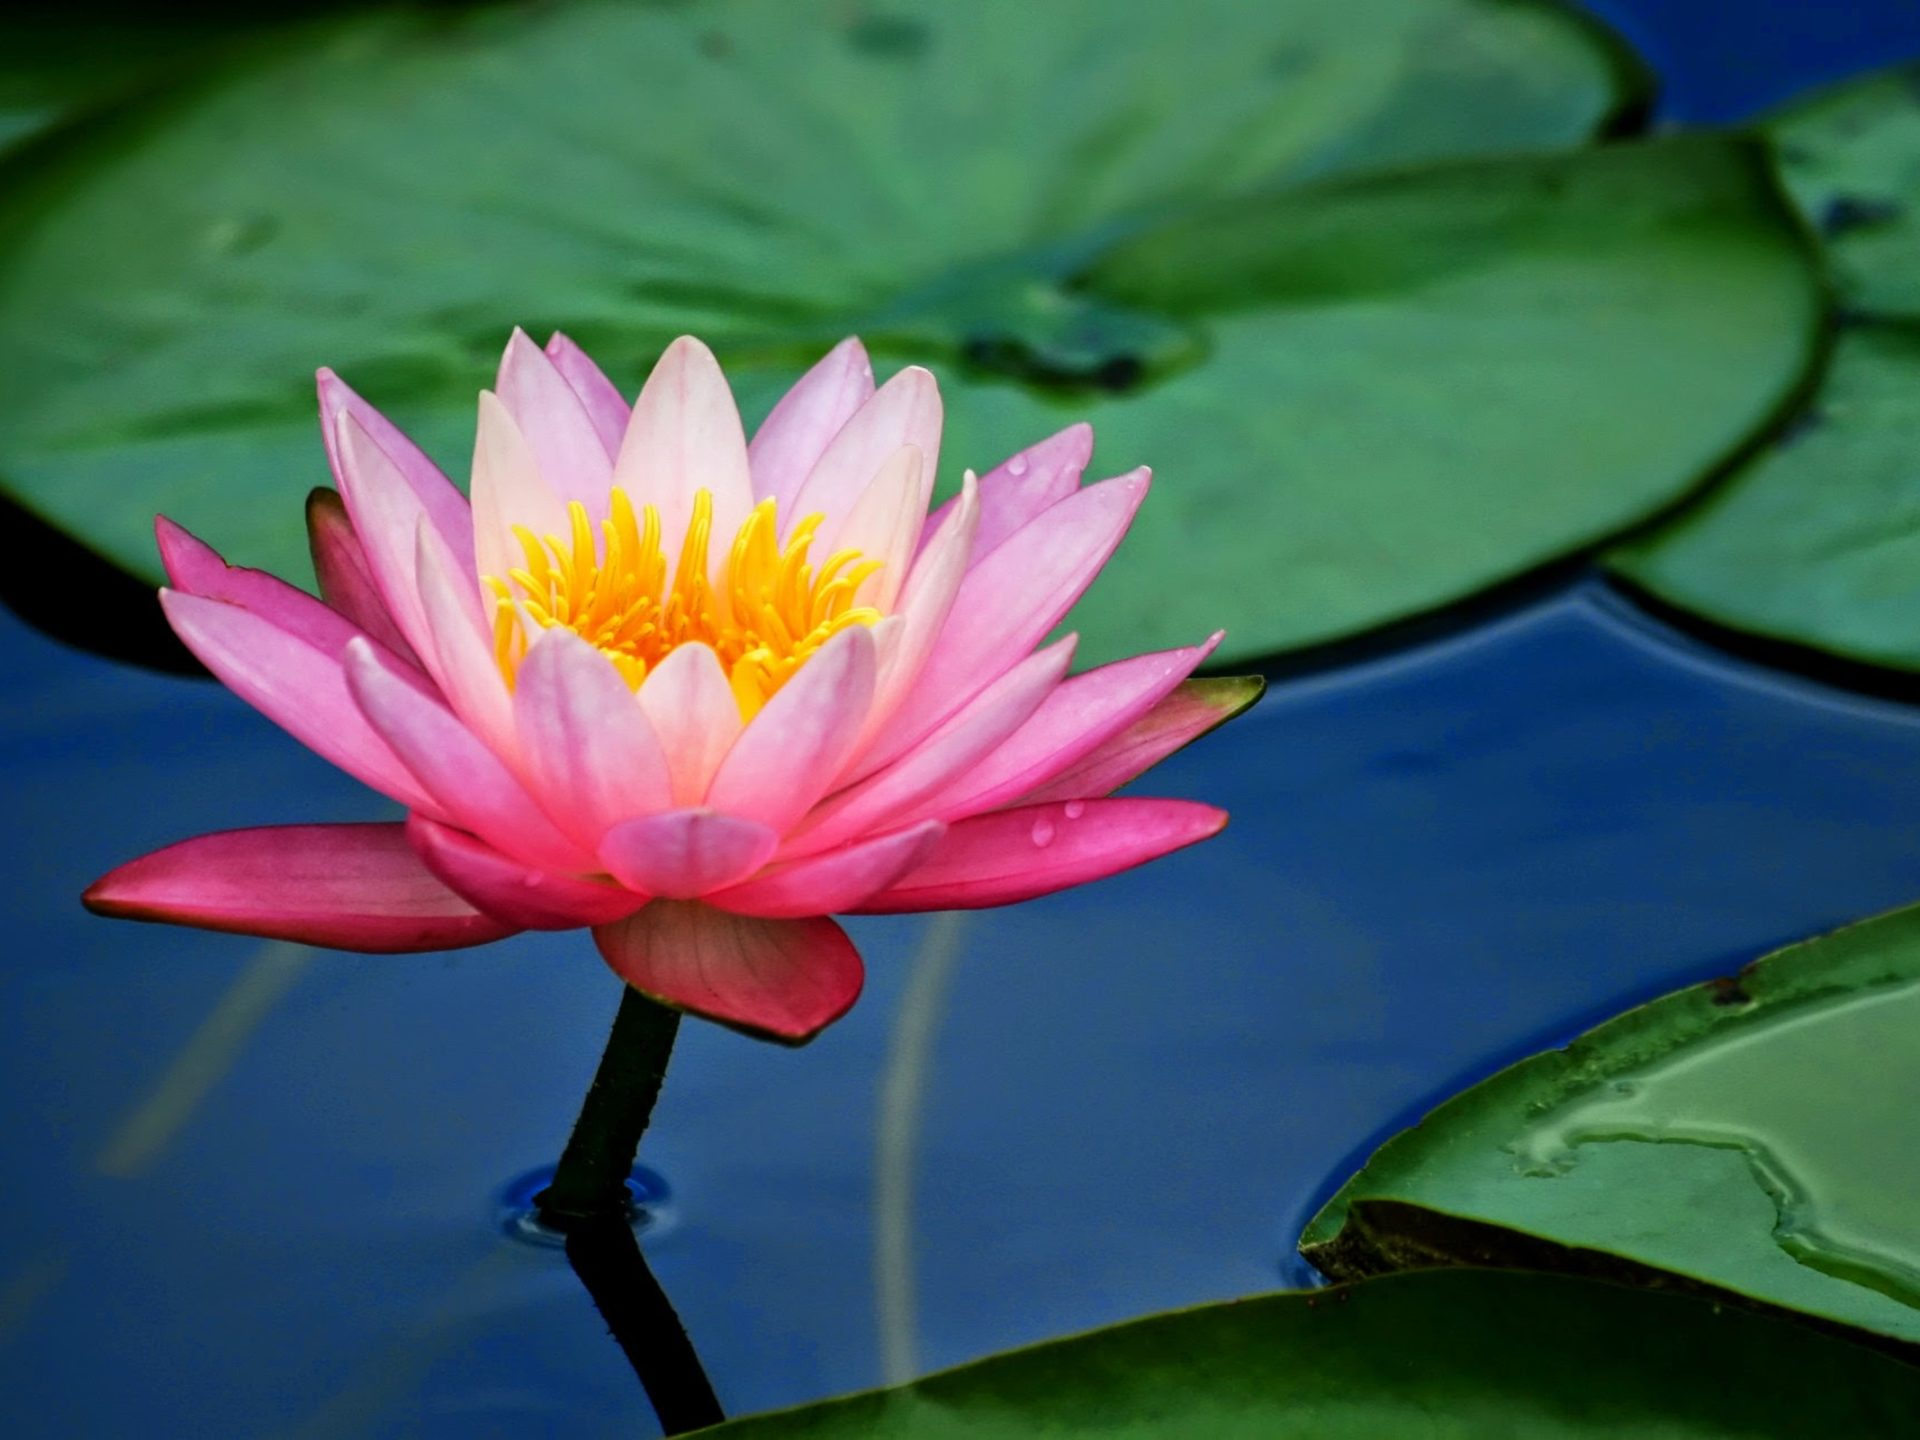 Free Christmas Wallpaper Iphone 4 Flower Pink Lotus Flower And Lily Pads 2560x1600